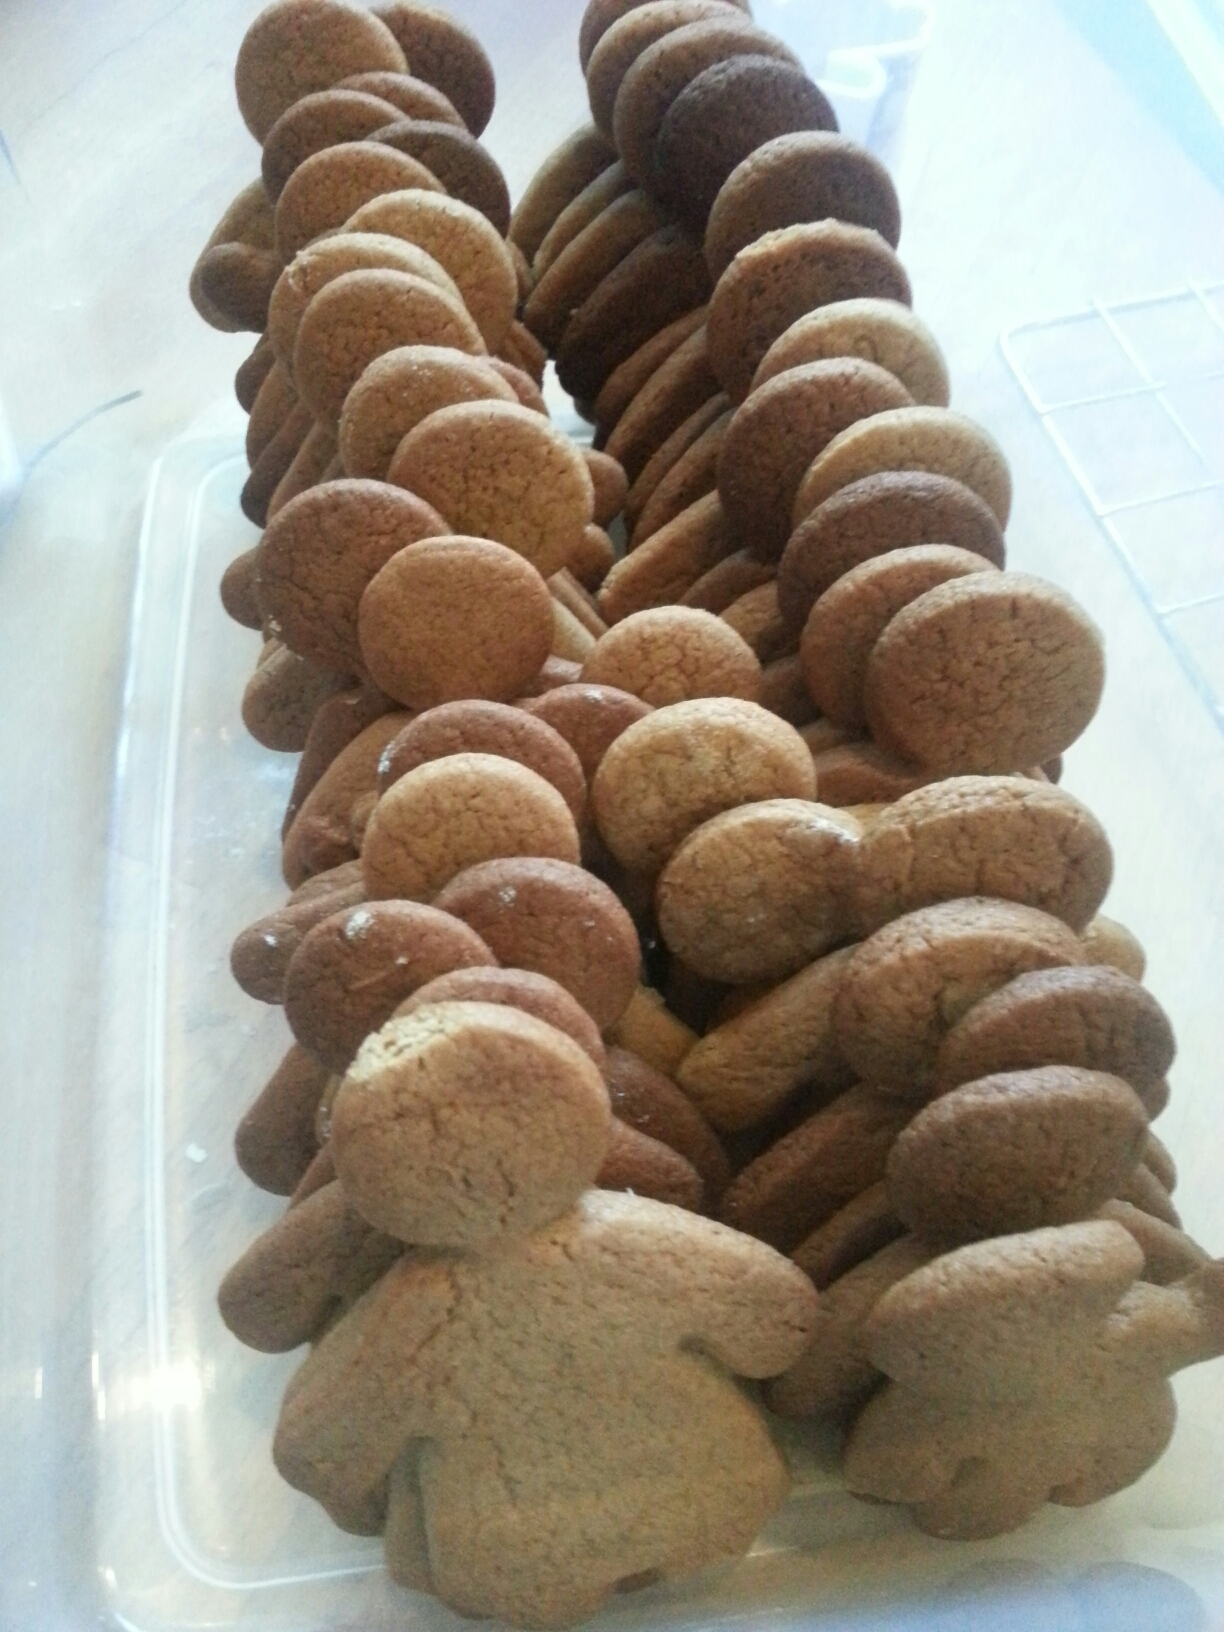 Rows of gingerbread biscuits